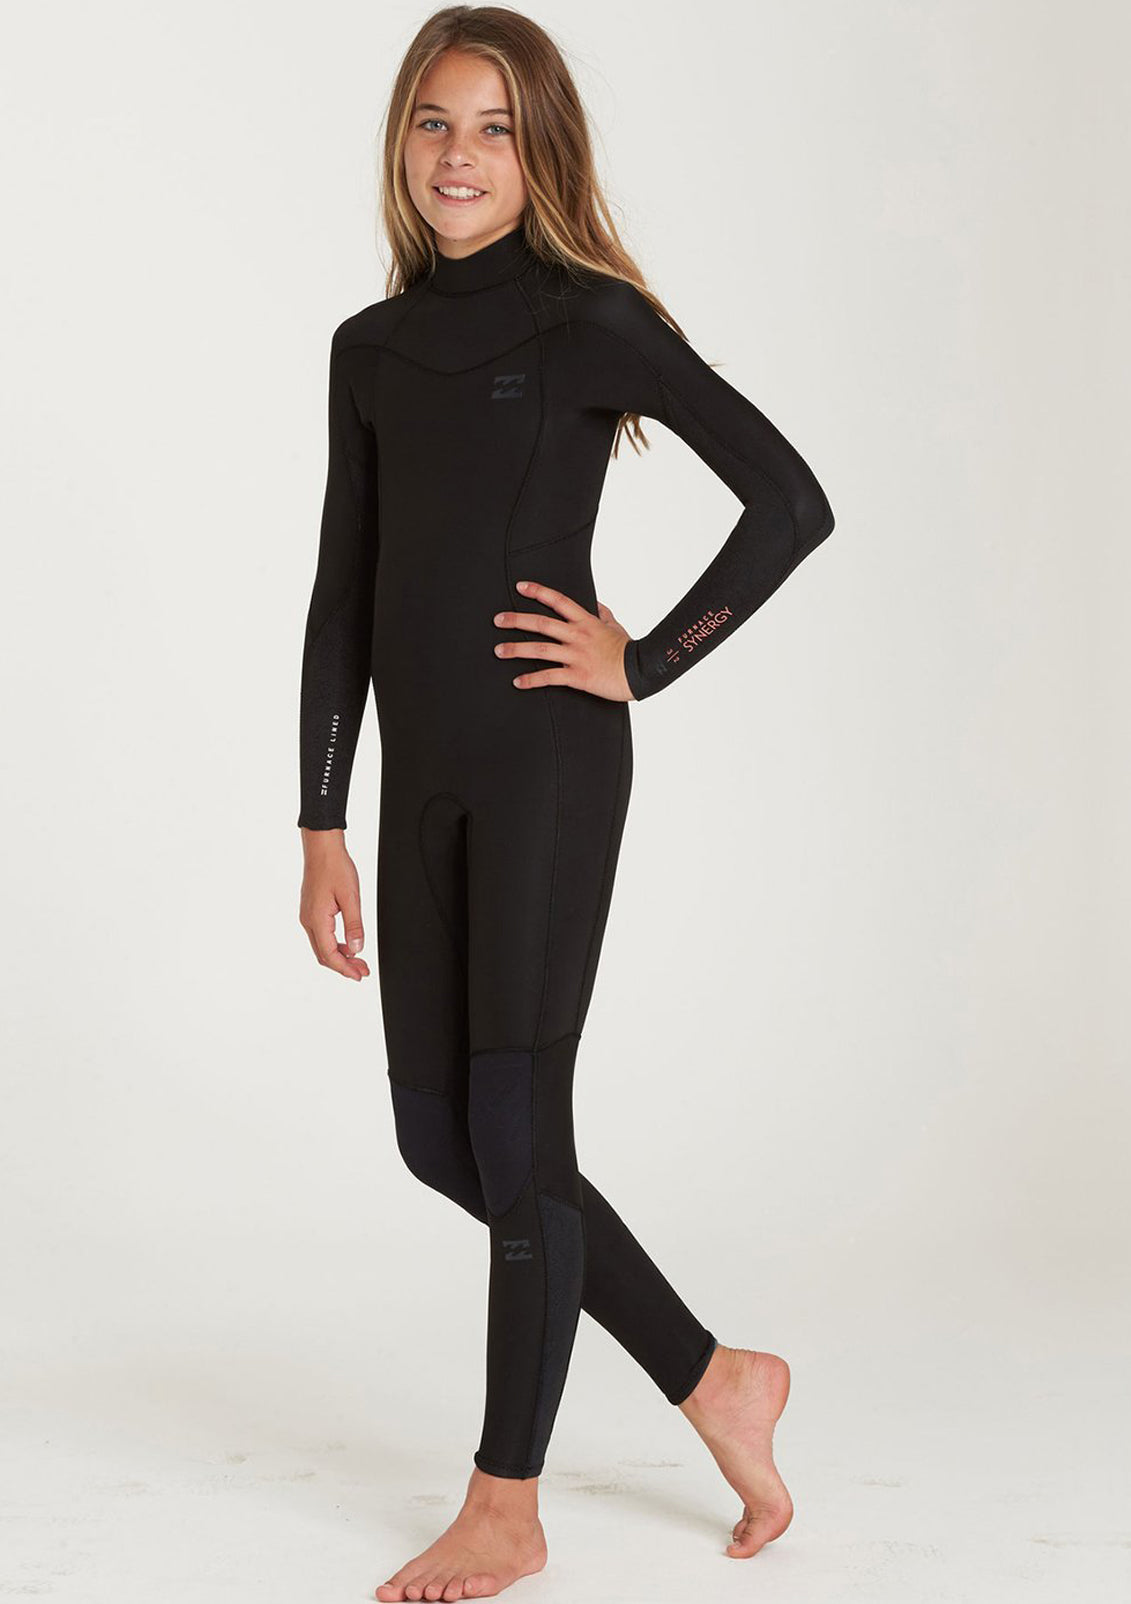 Billabong Girls 4/3 Furnace Synergy Back Zip Wetsuit